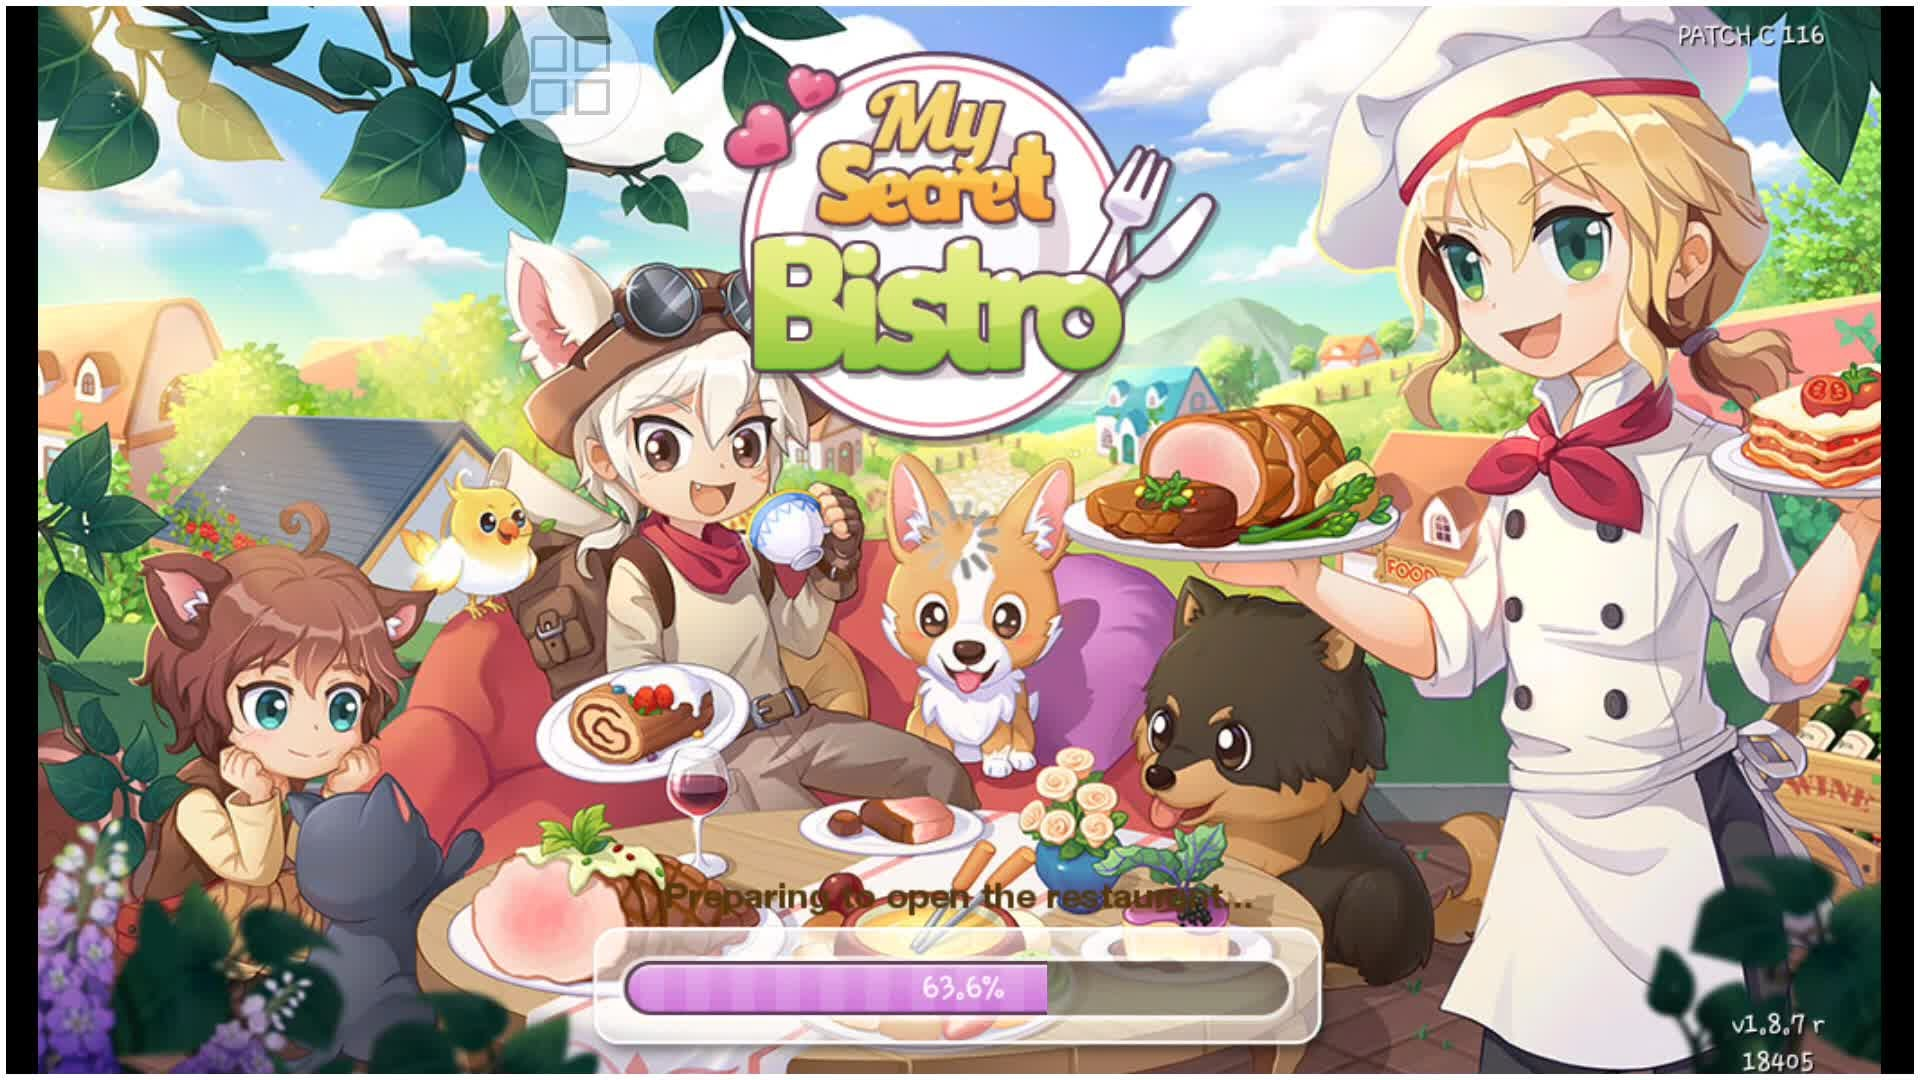 My Secret Bistro:  - Bugs & Issues - Bye my sub 😭 video cover image 1